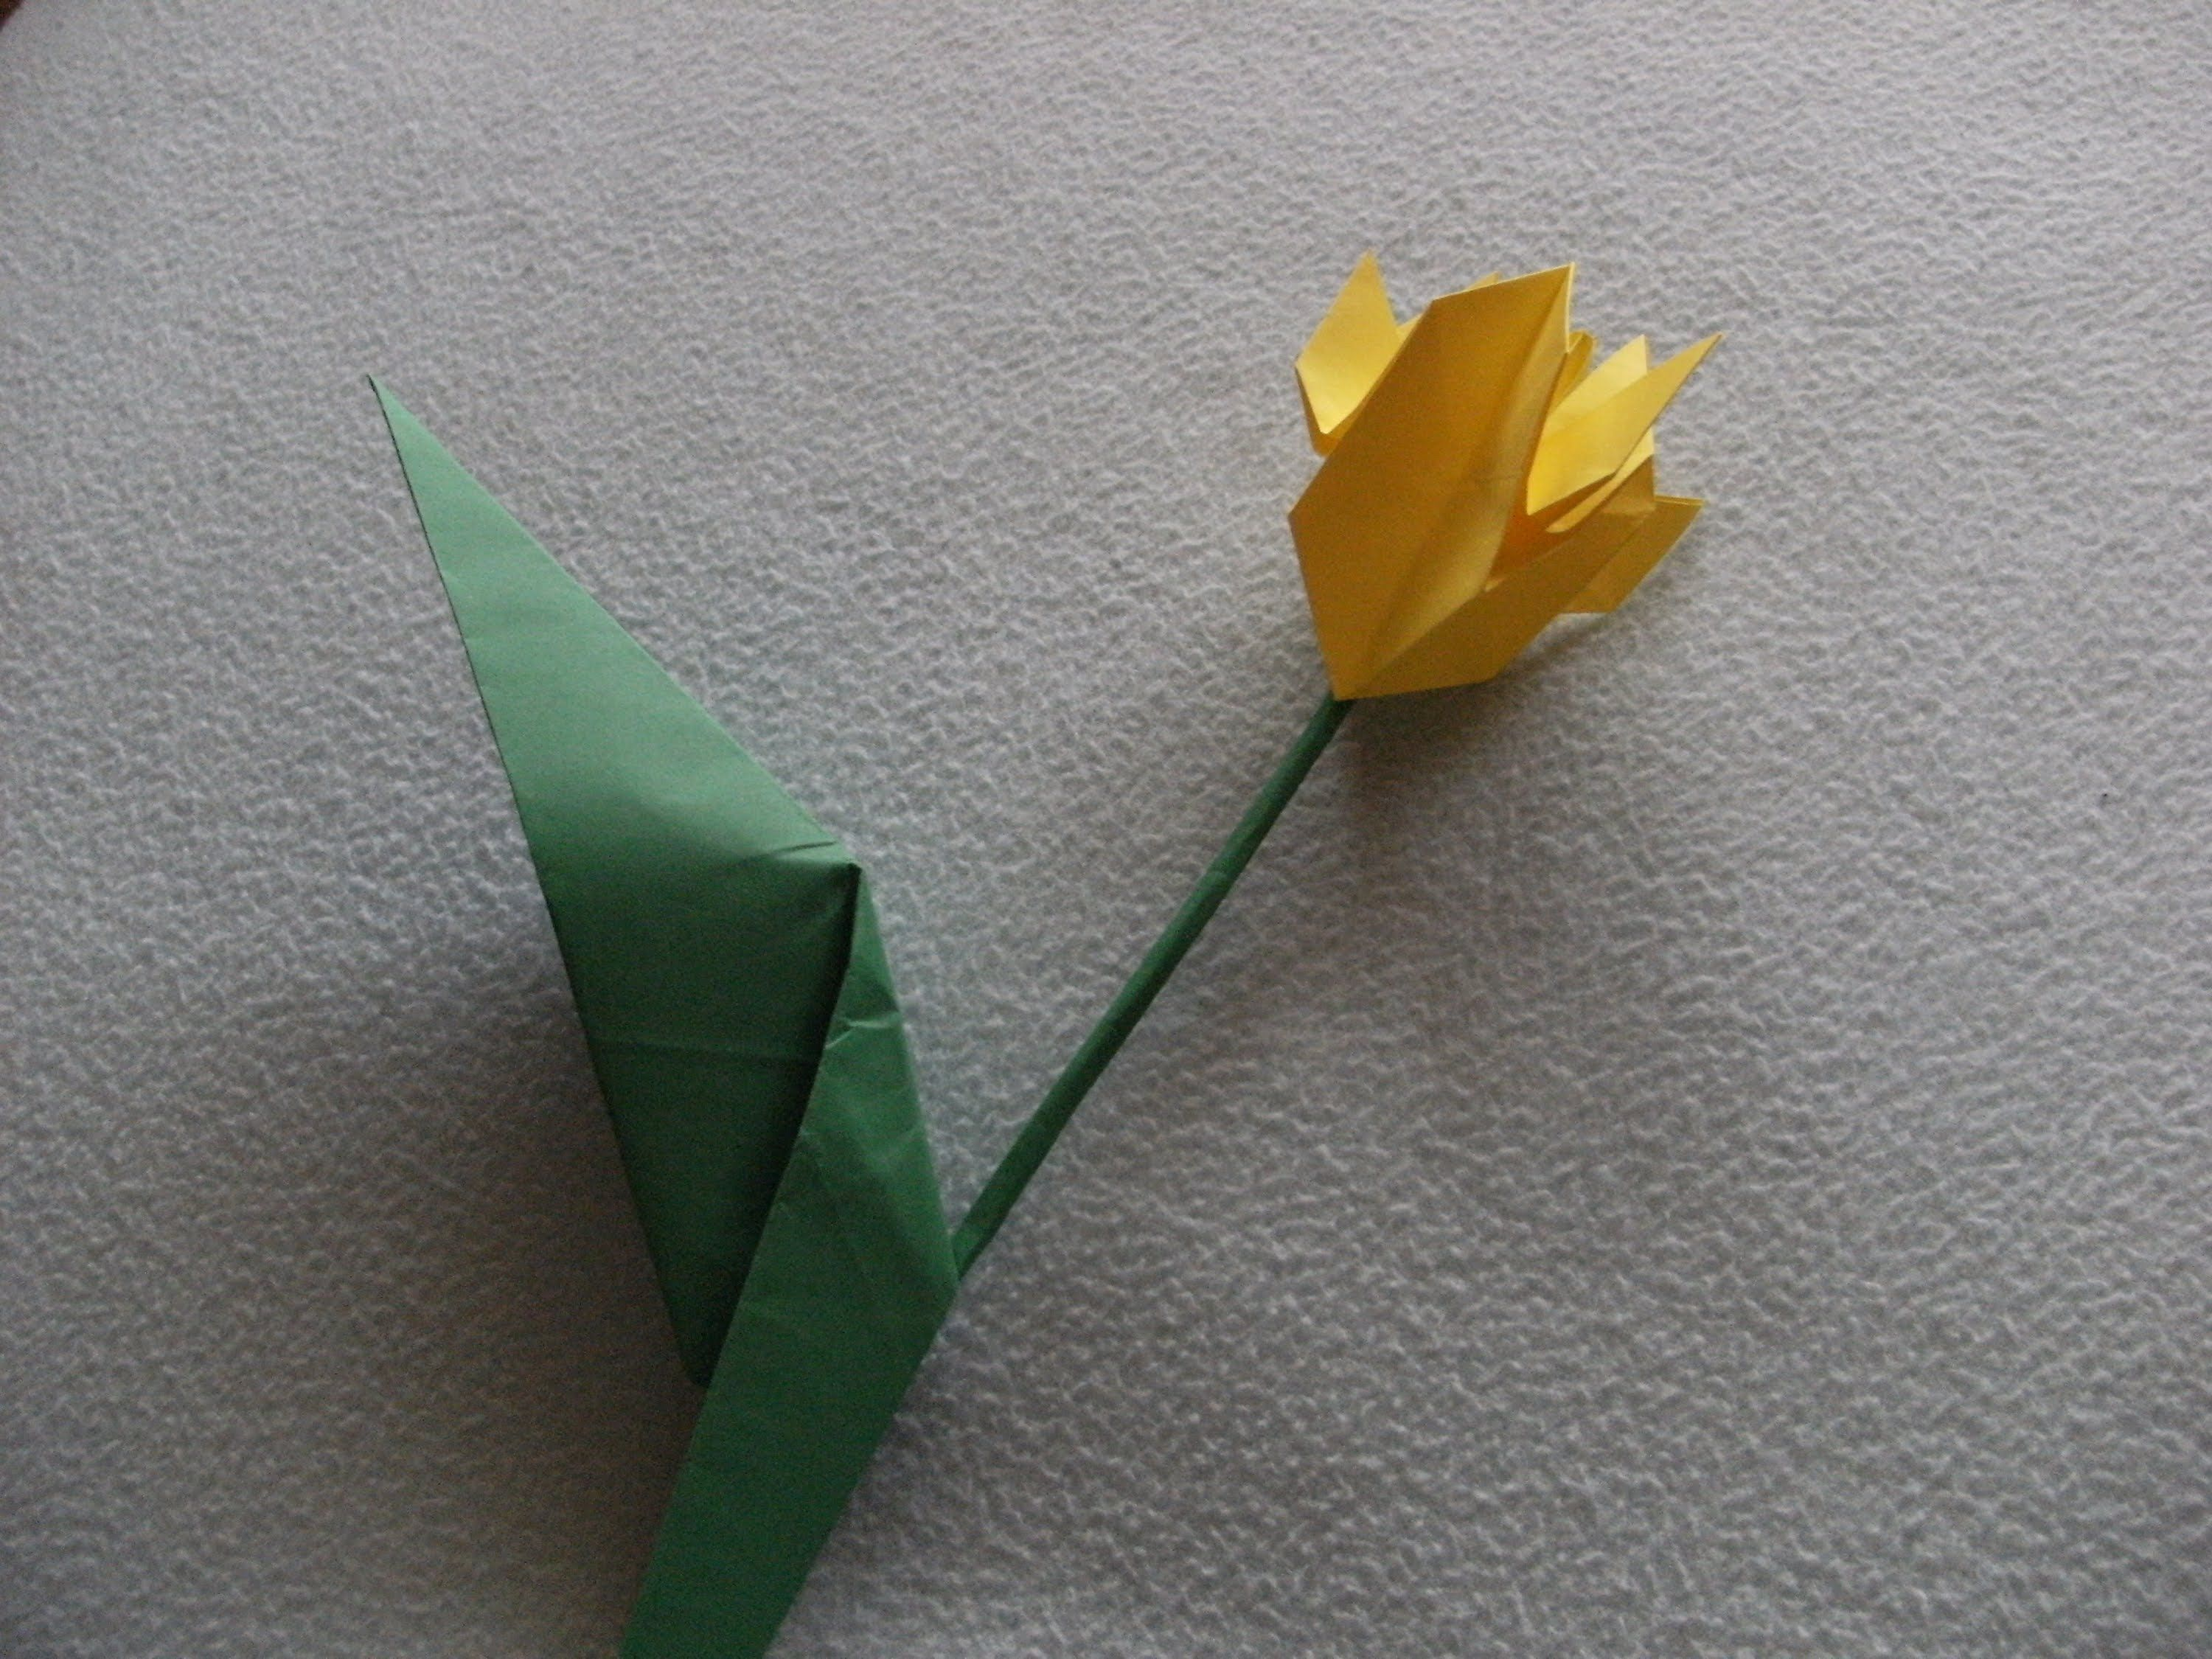 3d Origami Flower Tulip With Leaf How To Make Origami